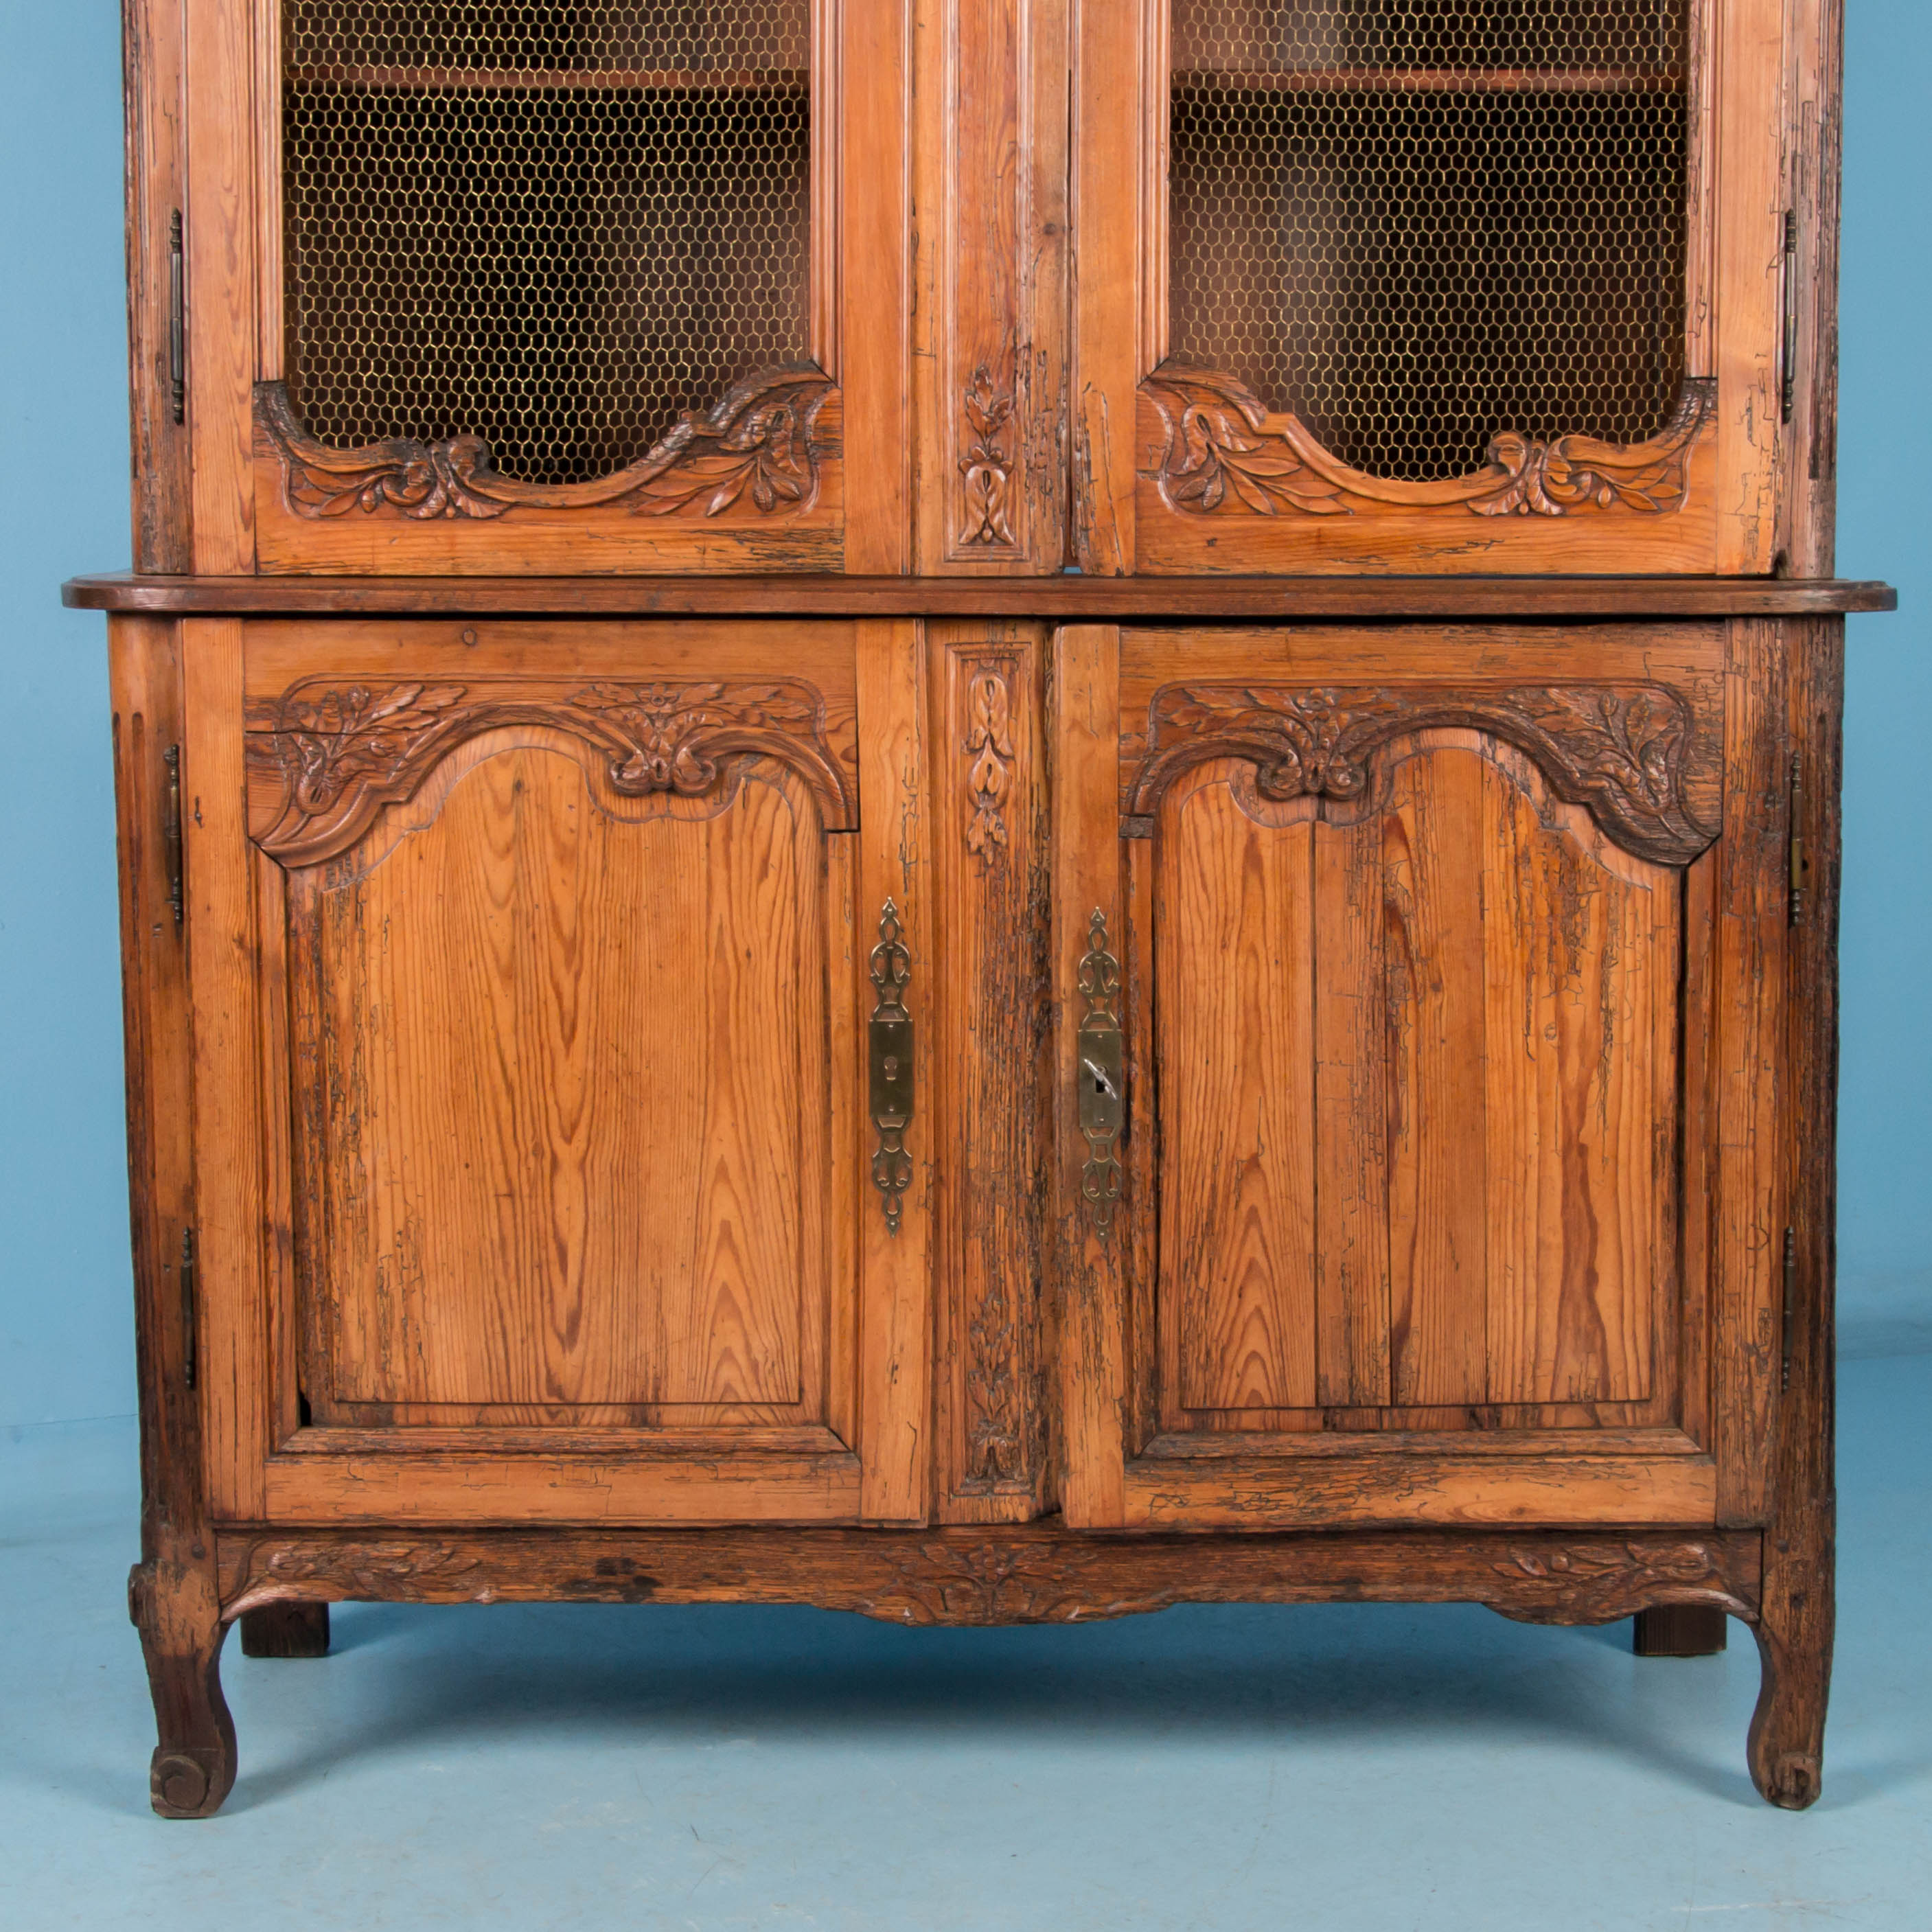 French Provincial Kitchen Cabinets: Antique 19th Century Hand Carved French Provincial